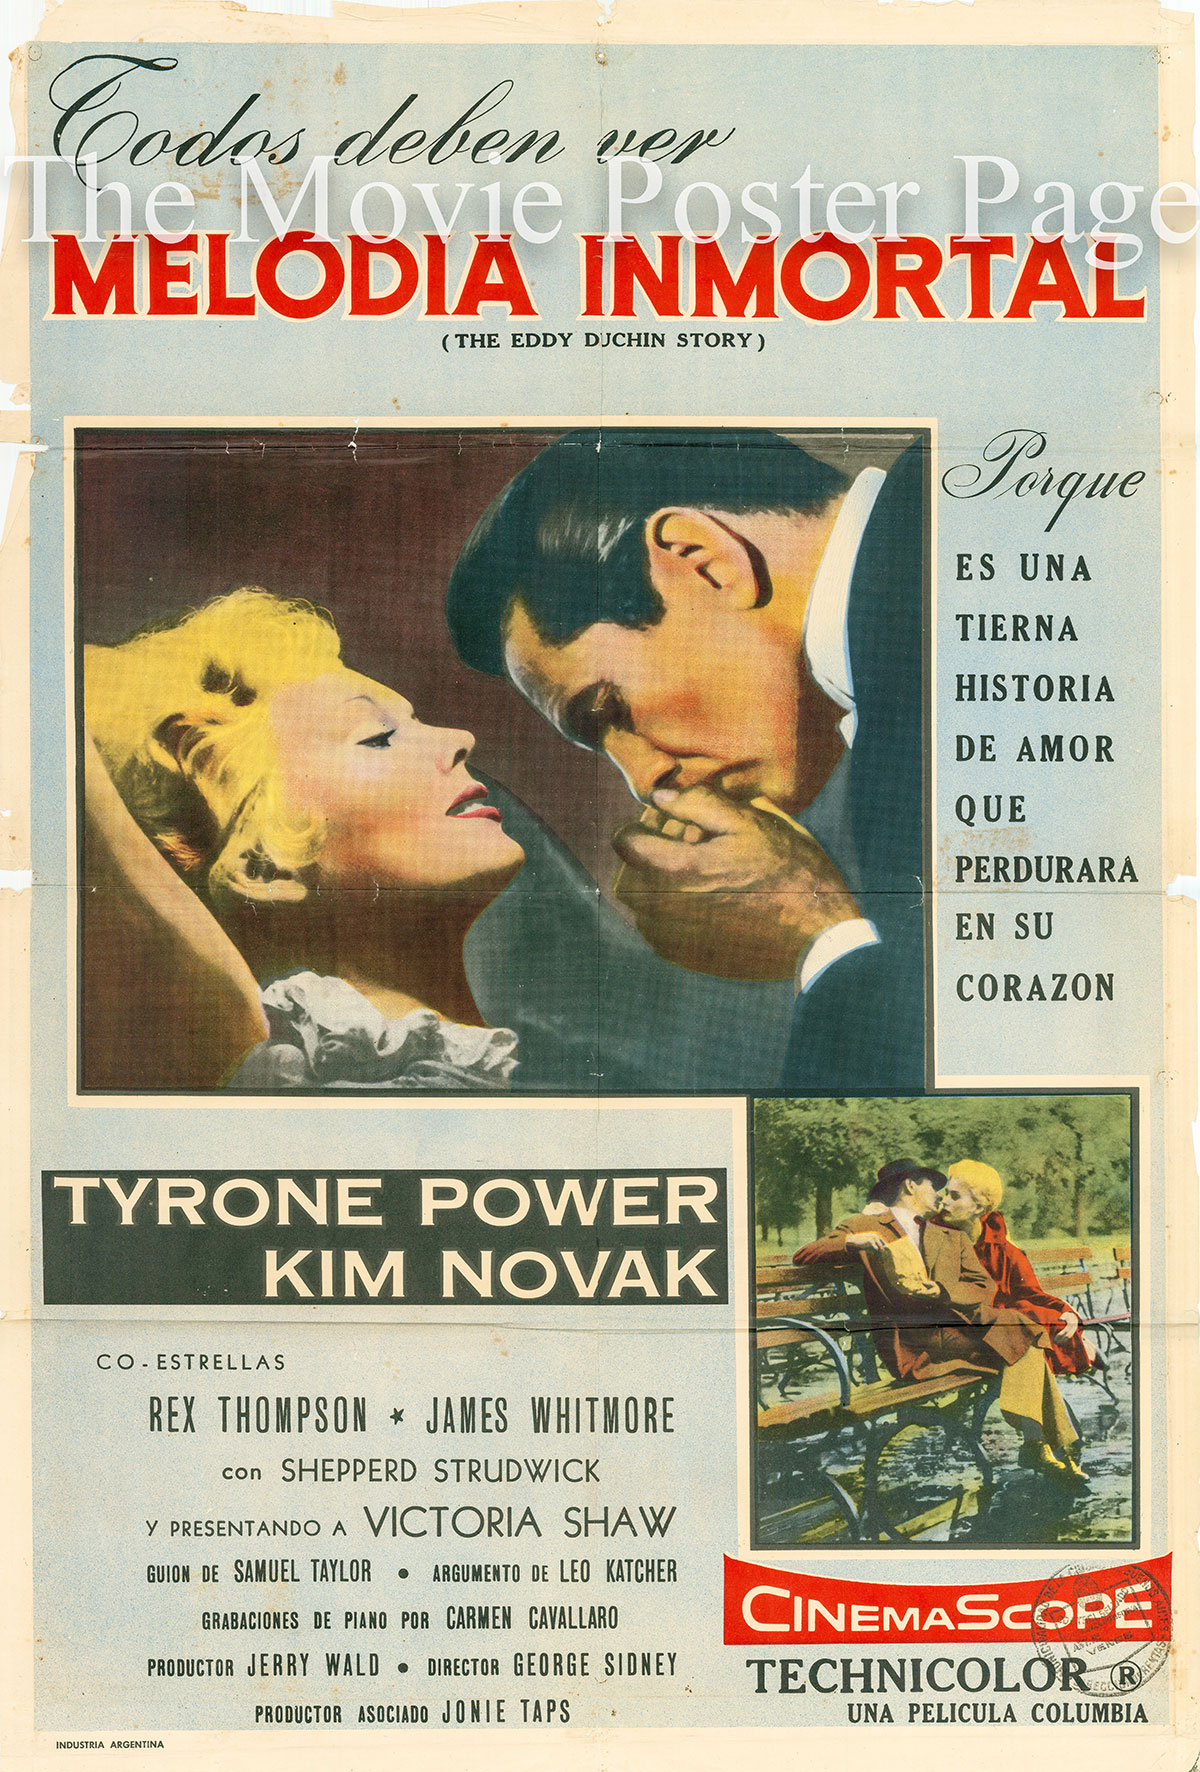 Pictured is an Argentine one-sheet poster for the 1956 George Sidney film The Eddy Duchin Story starring Tyrone Power as Eddy Duchin.